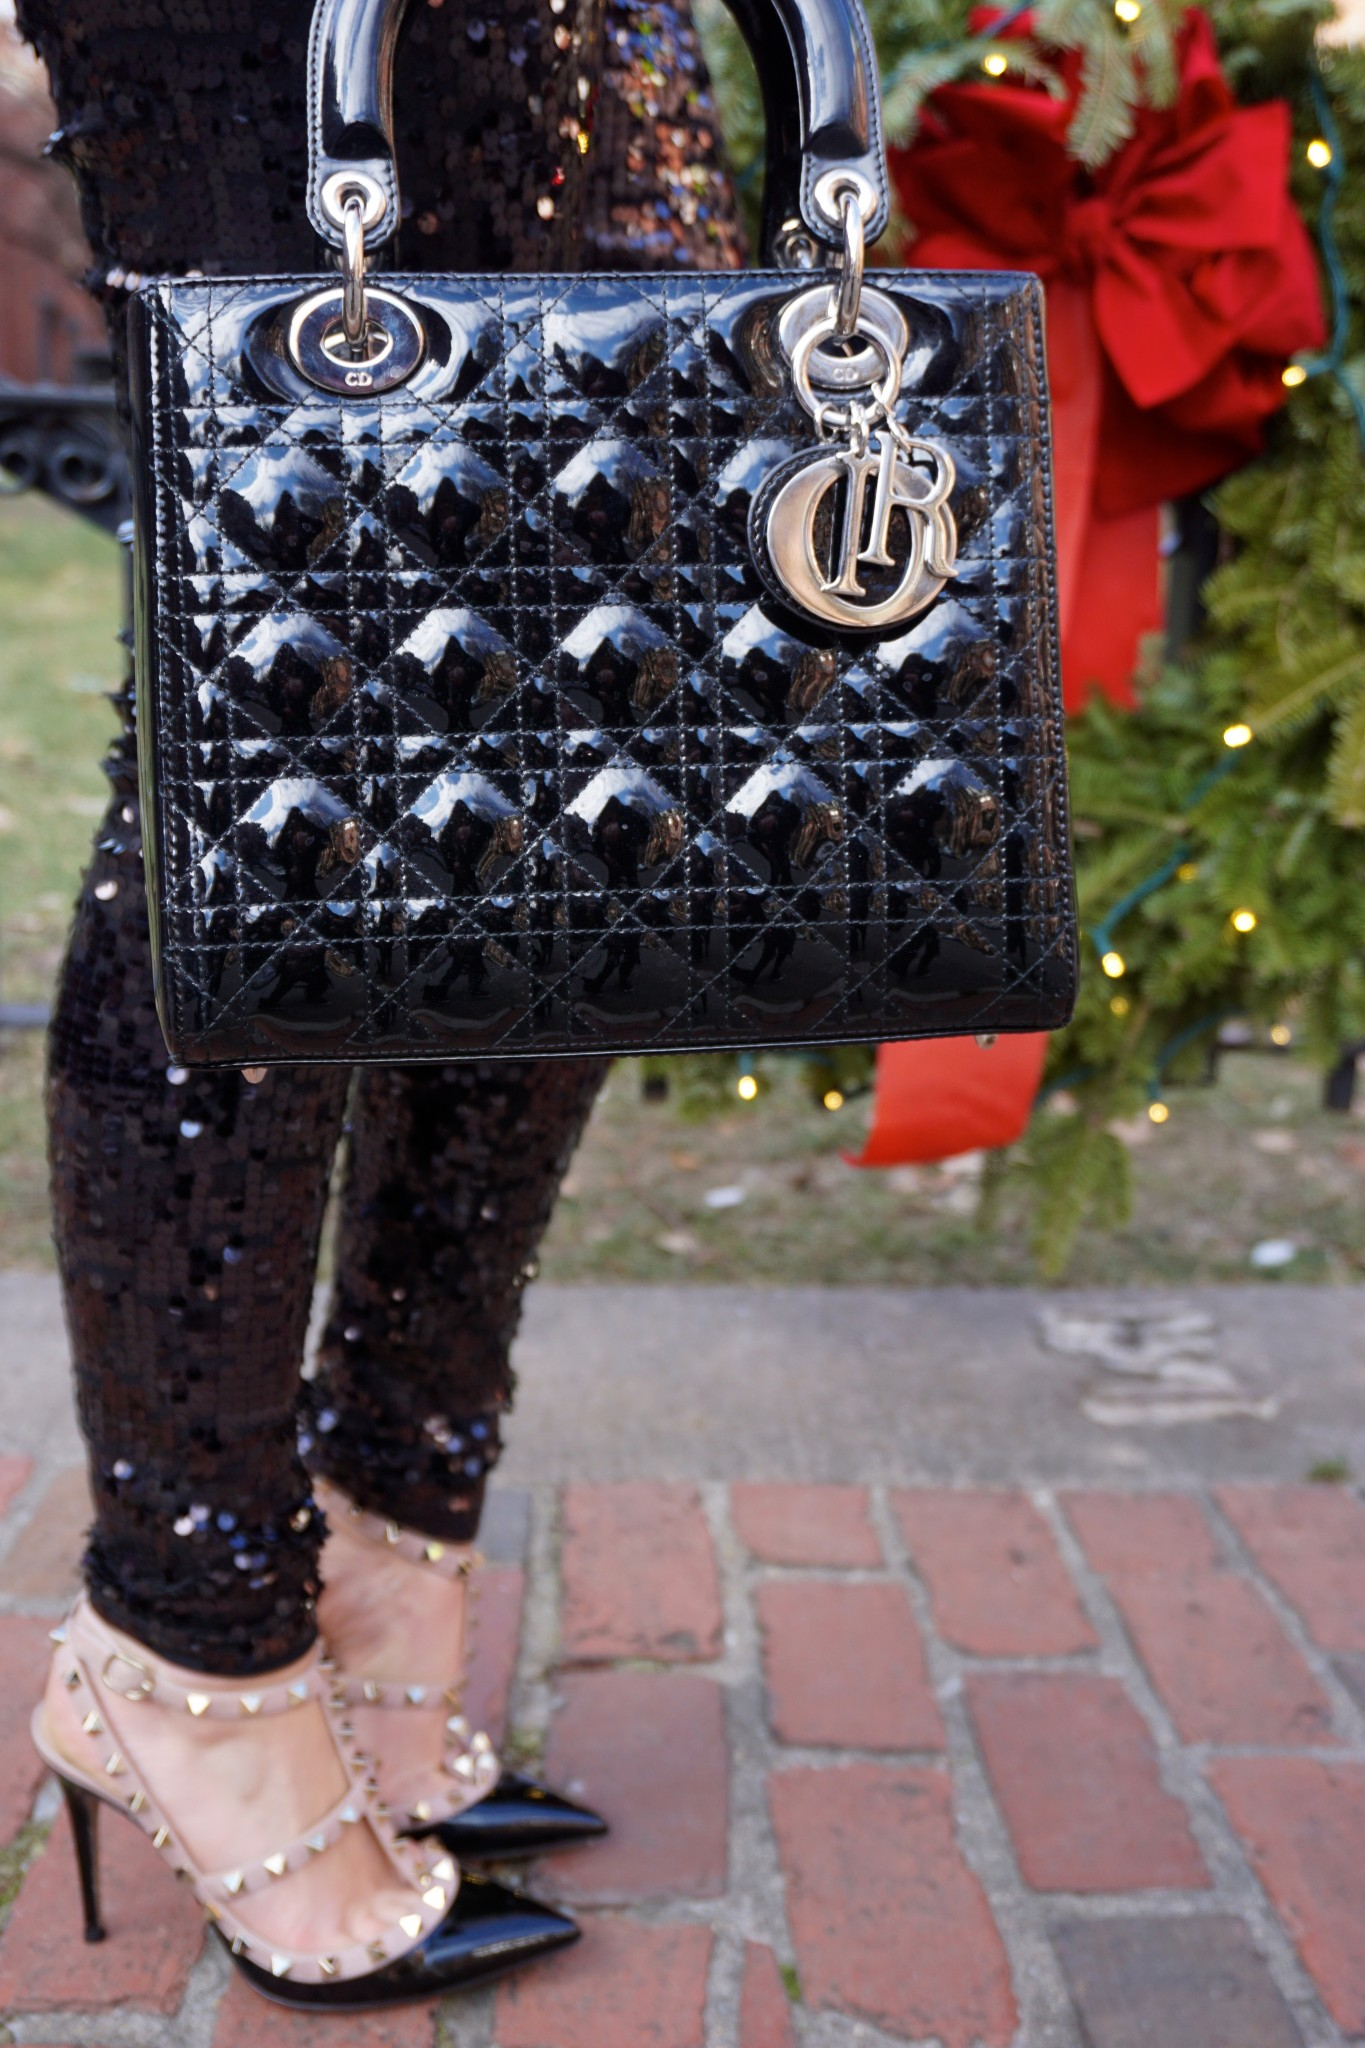 dior lady dior black handbag, valentino rock stud pumps, the-alyst.com